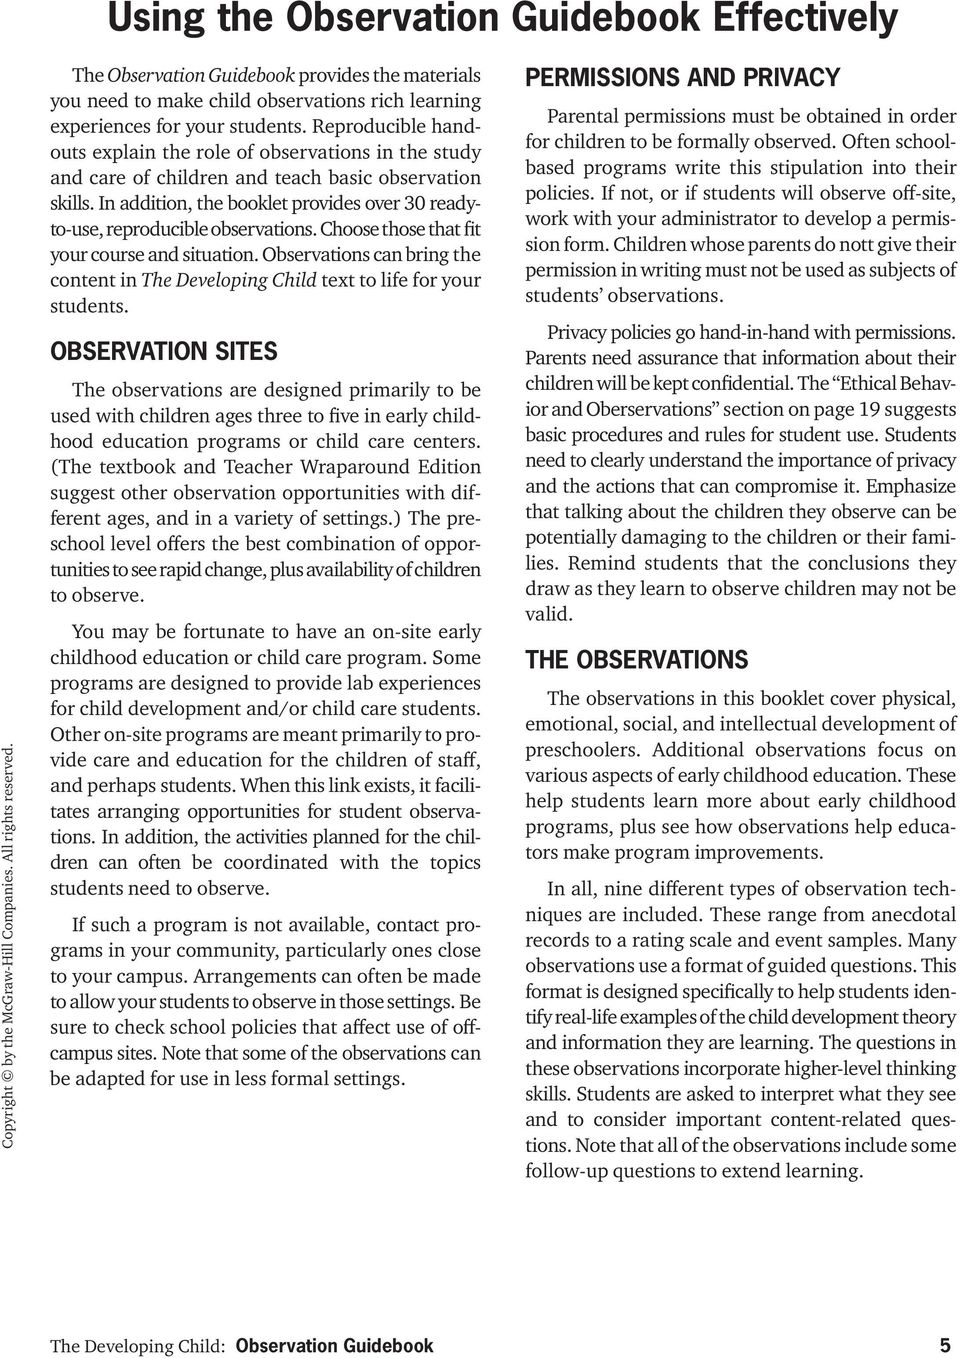 the developing child observation guidebook pdf rh docplayer net